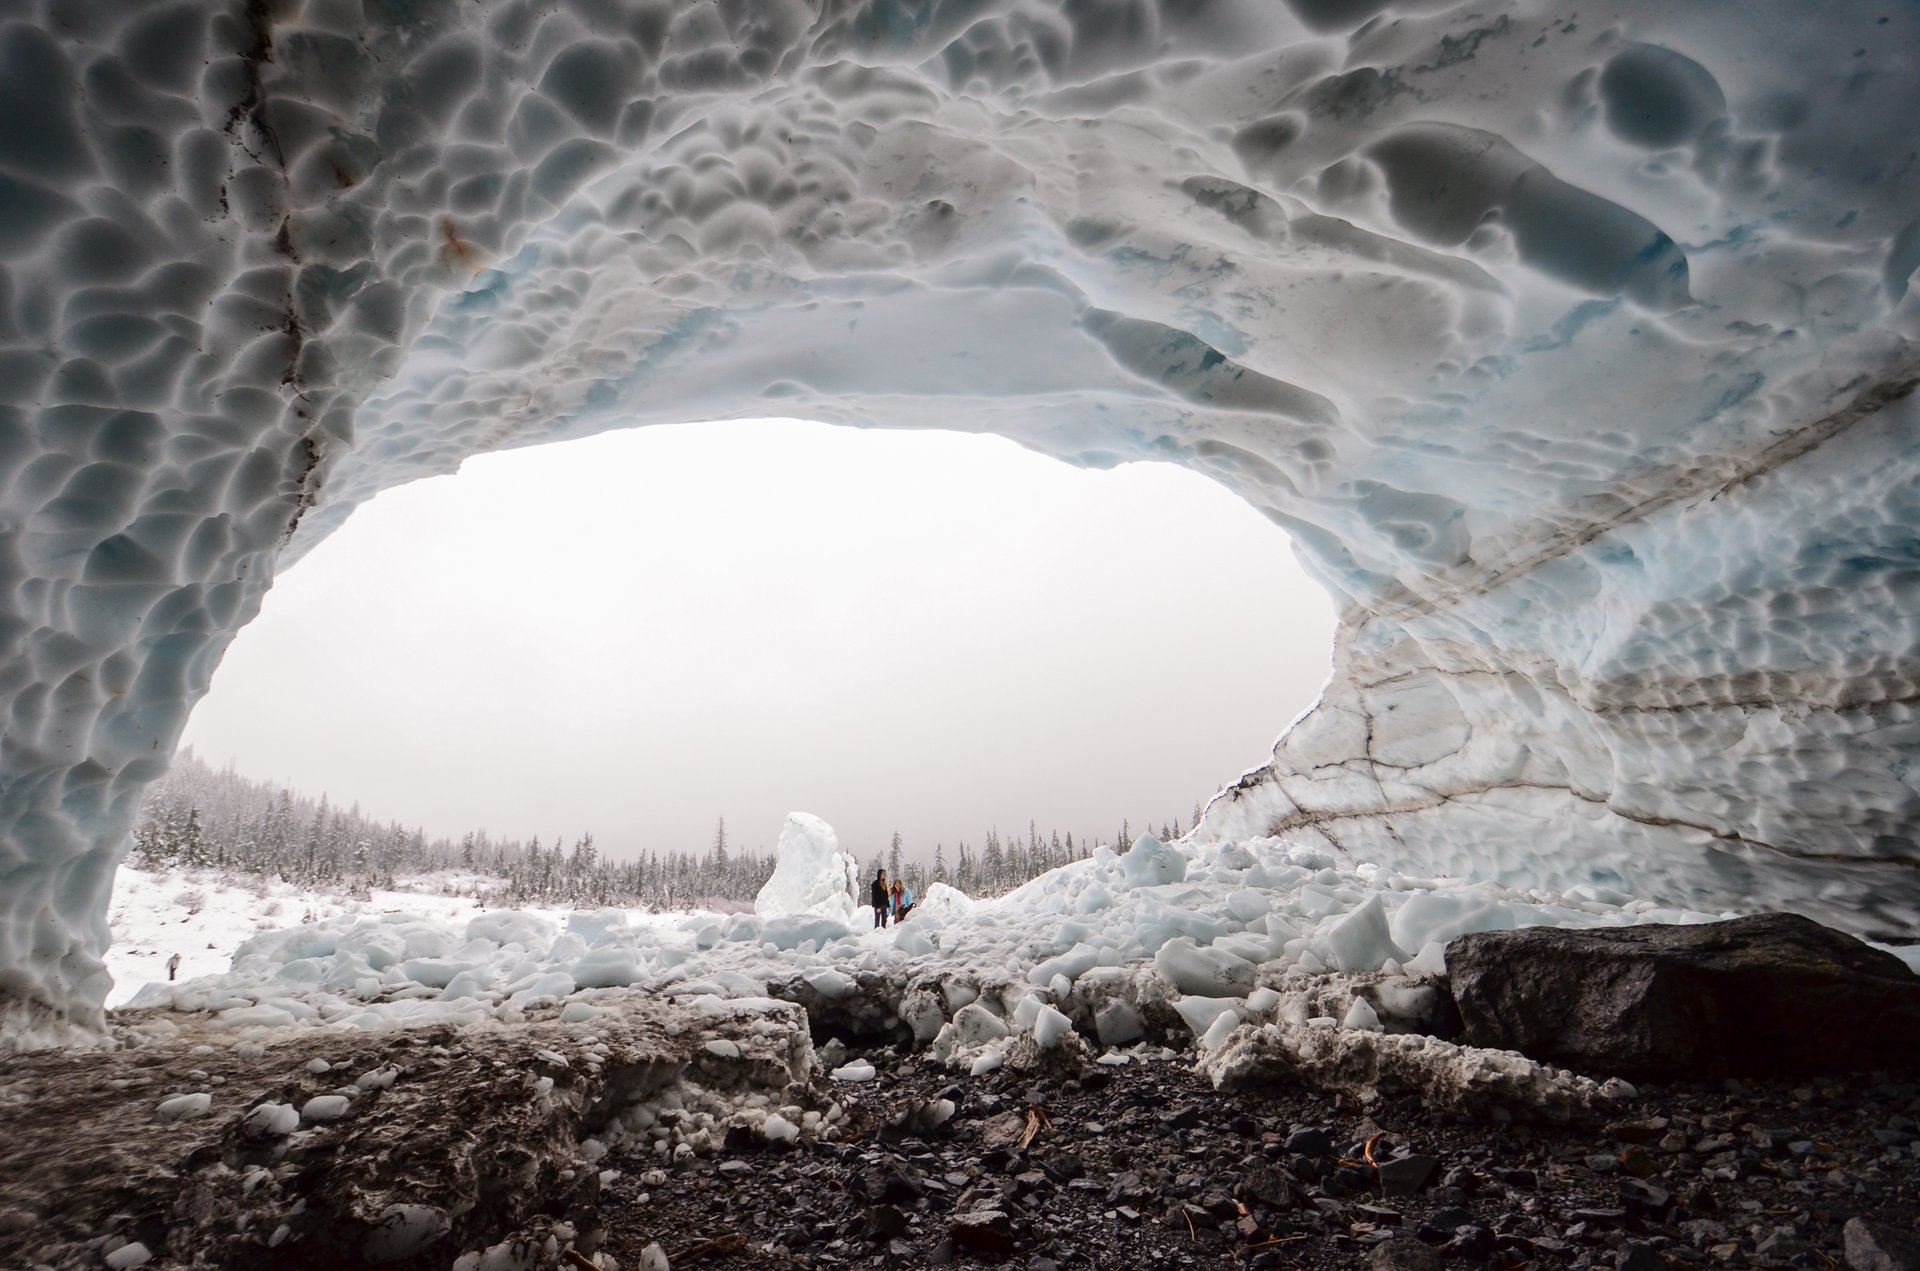 Big Four Ice Caves in Seattle 2020 - Best Time